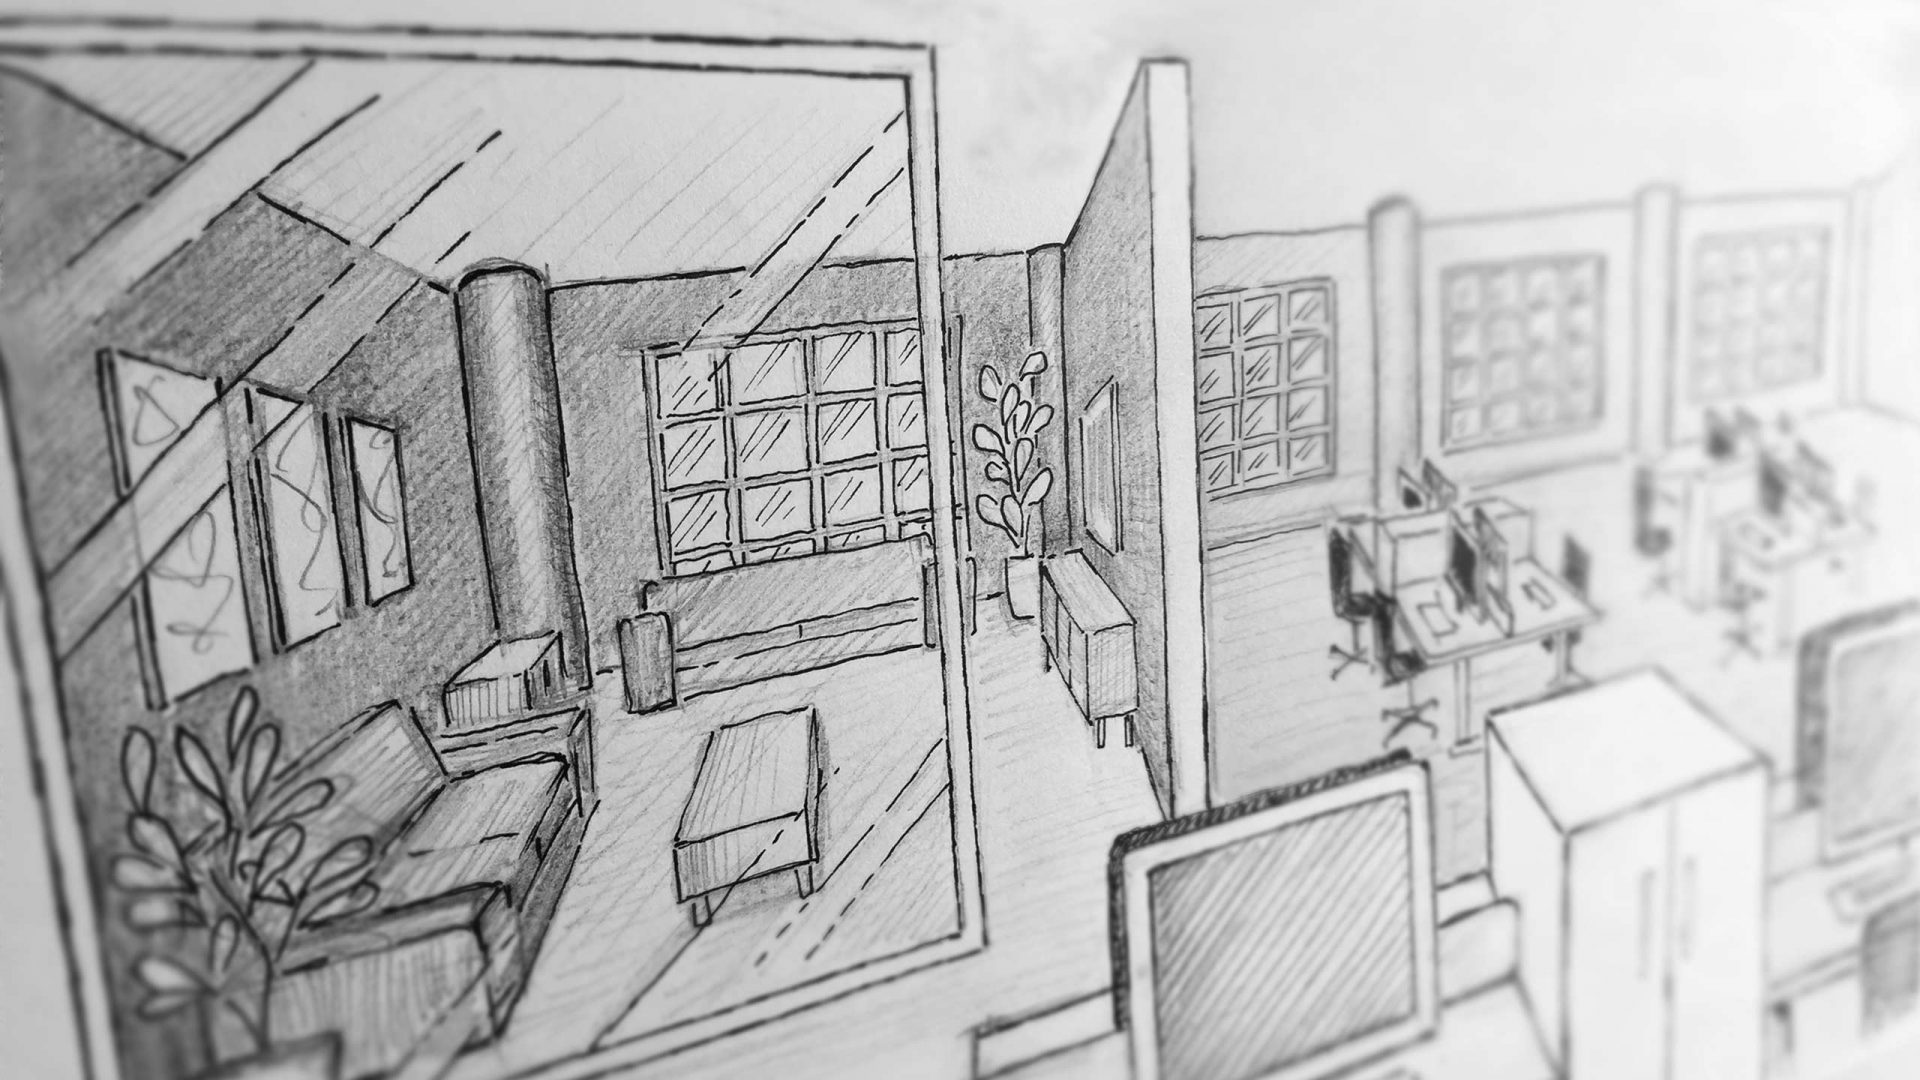 Sketch for an office design by Liqui showing the breakout longe area.